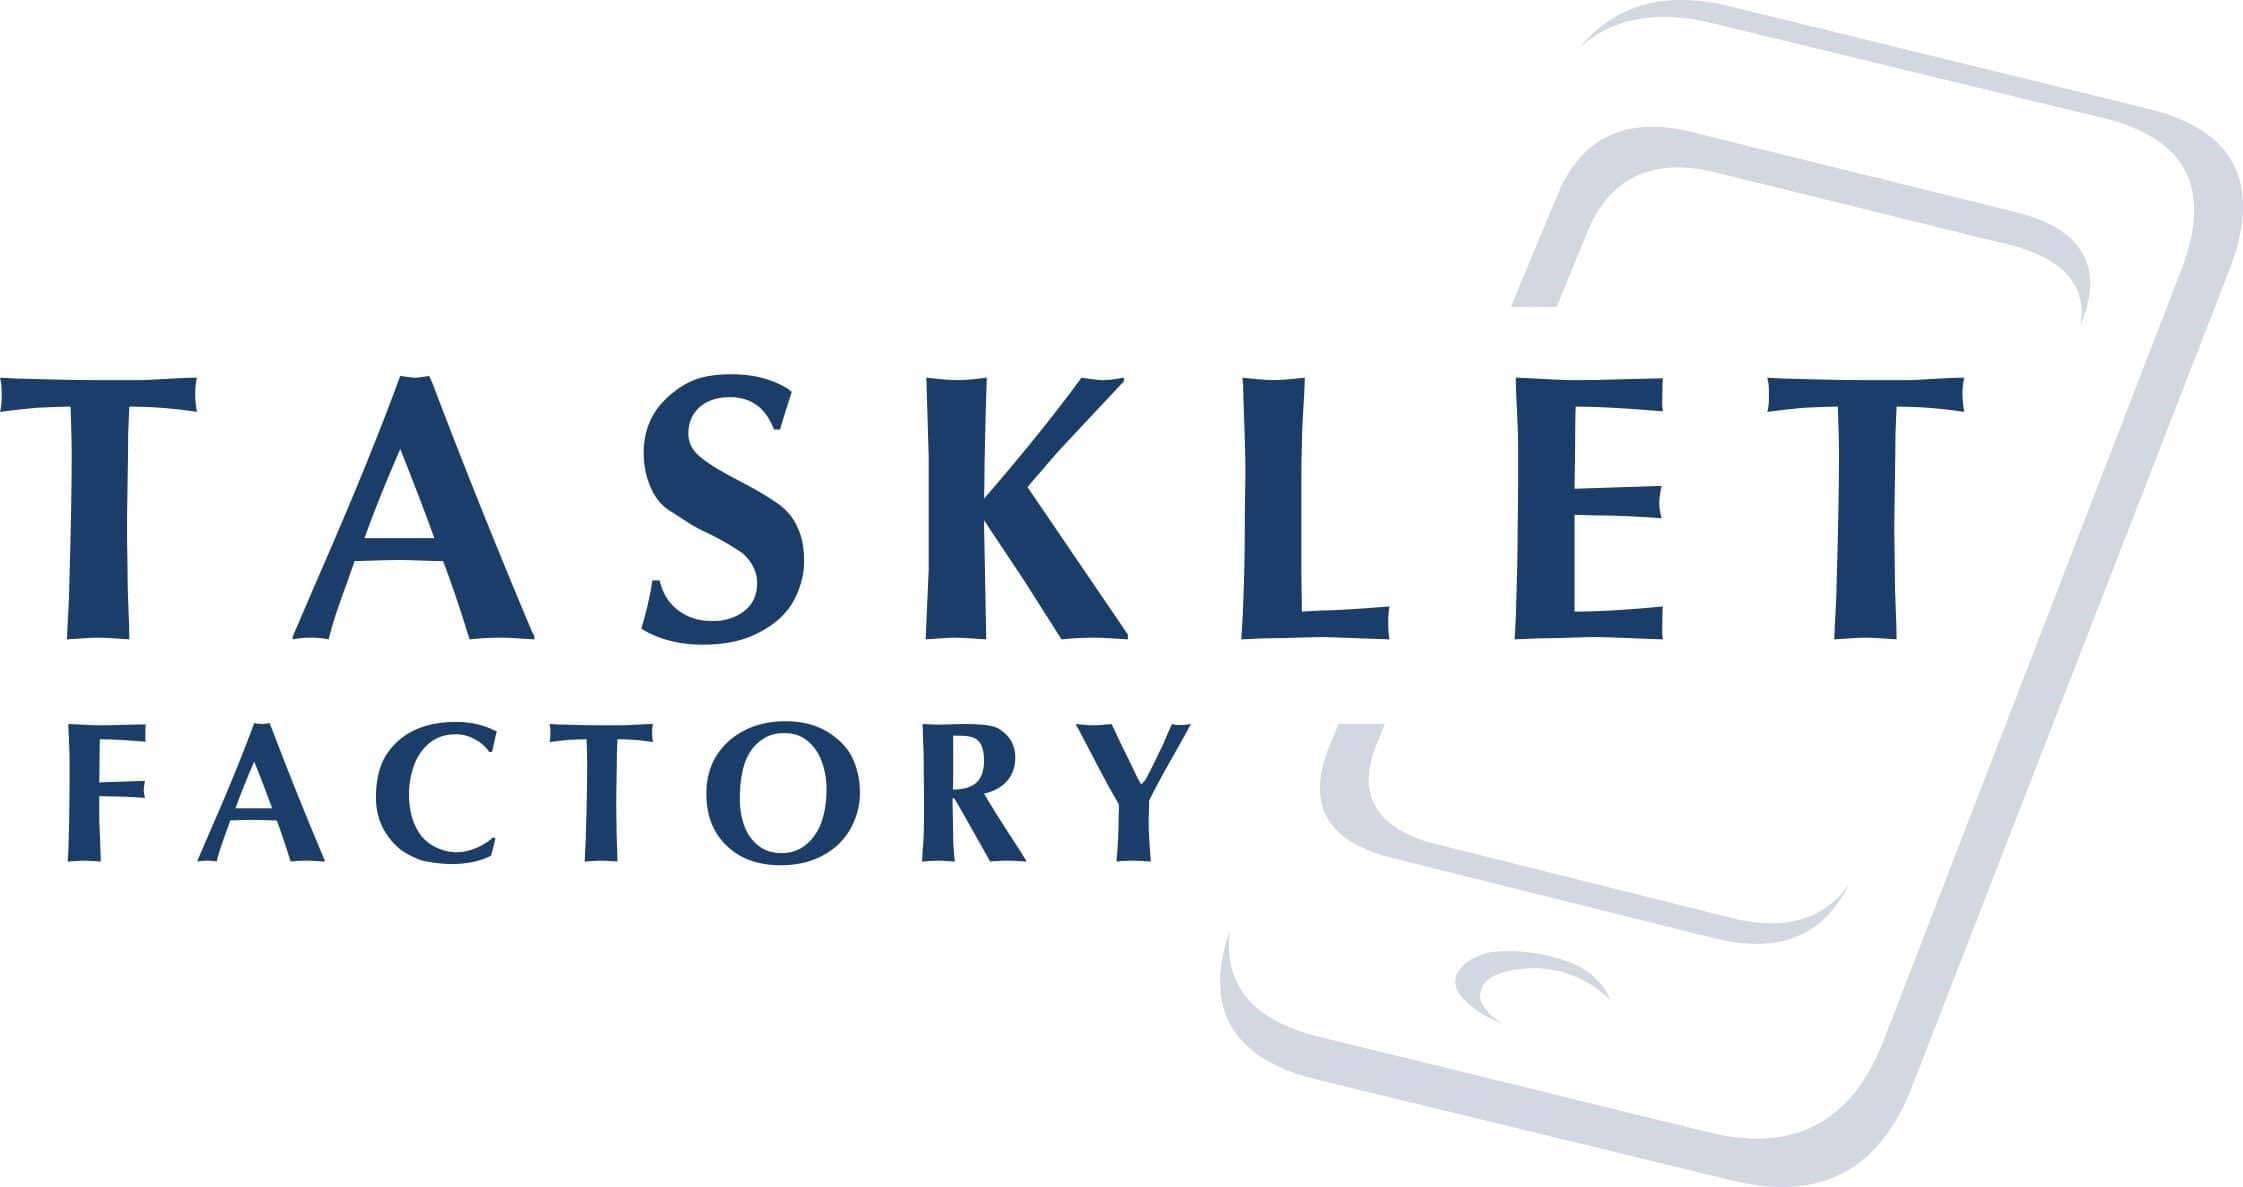 Introduction to Tasklet Factory Mobile WMS